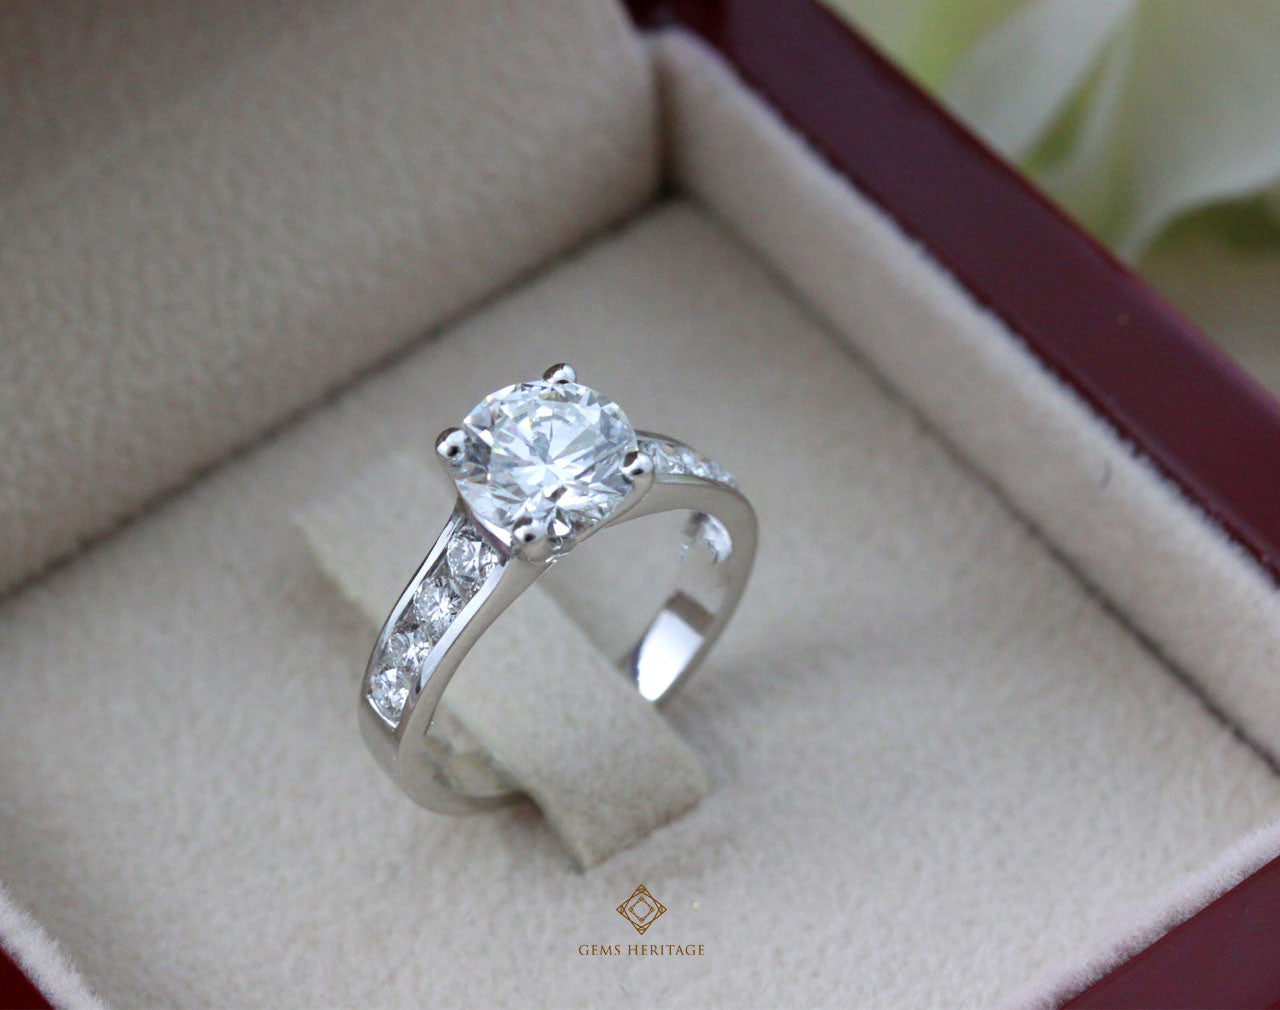 1.6 cts middle stone Diamond Ring